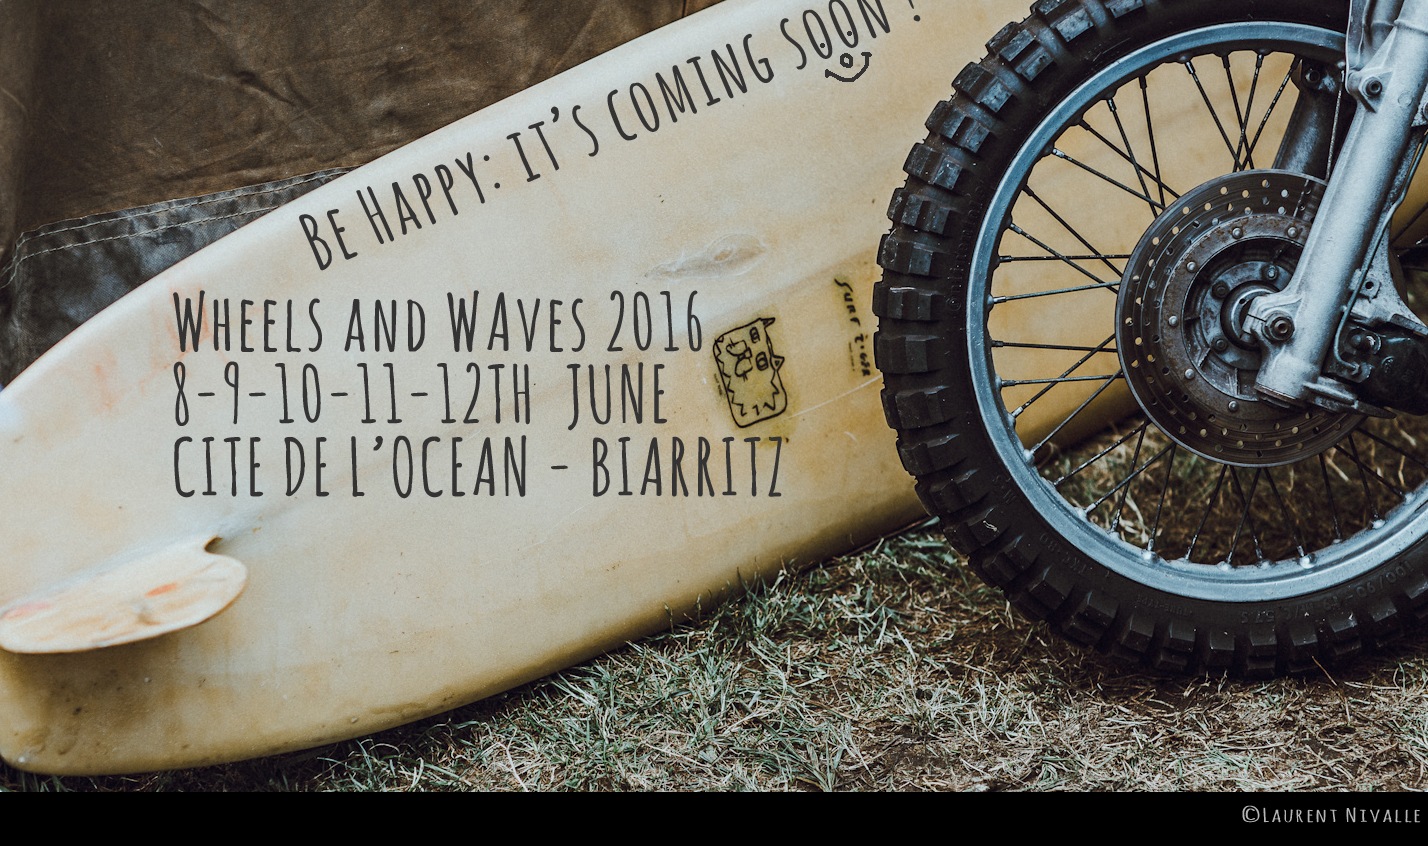 LAURENT_NIVALLE_WHEELS_AND_WAVES_2015